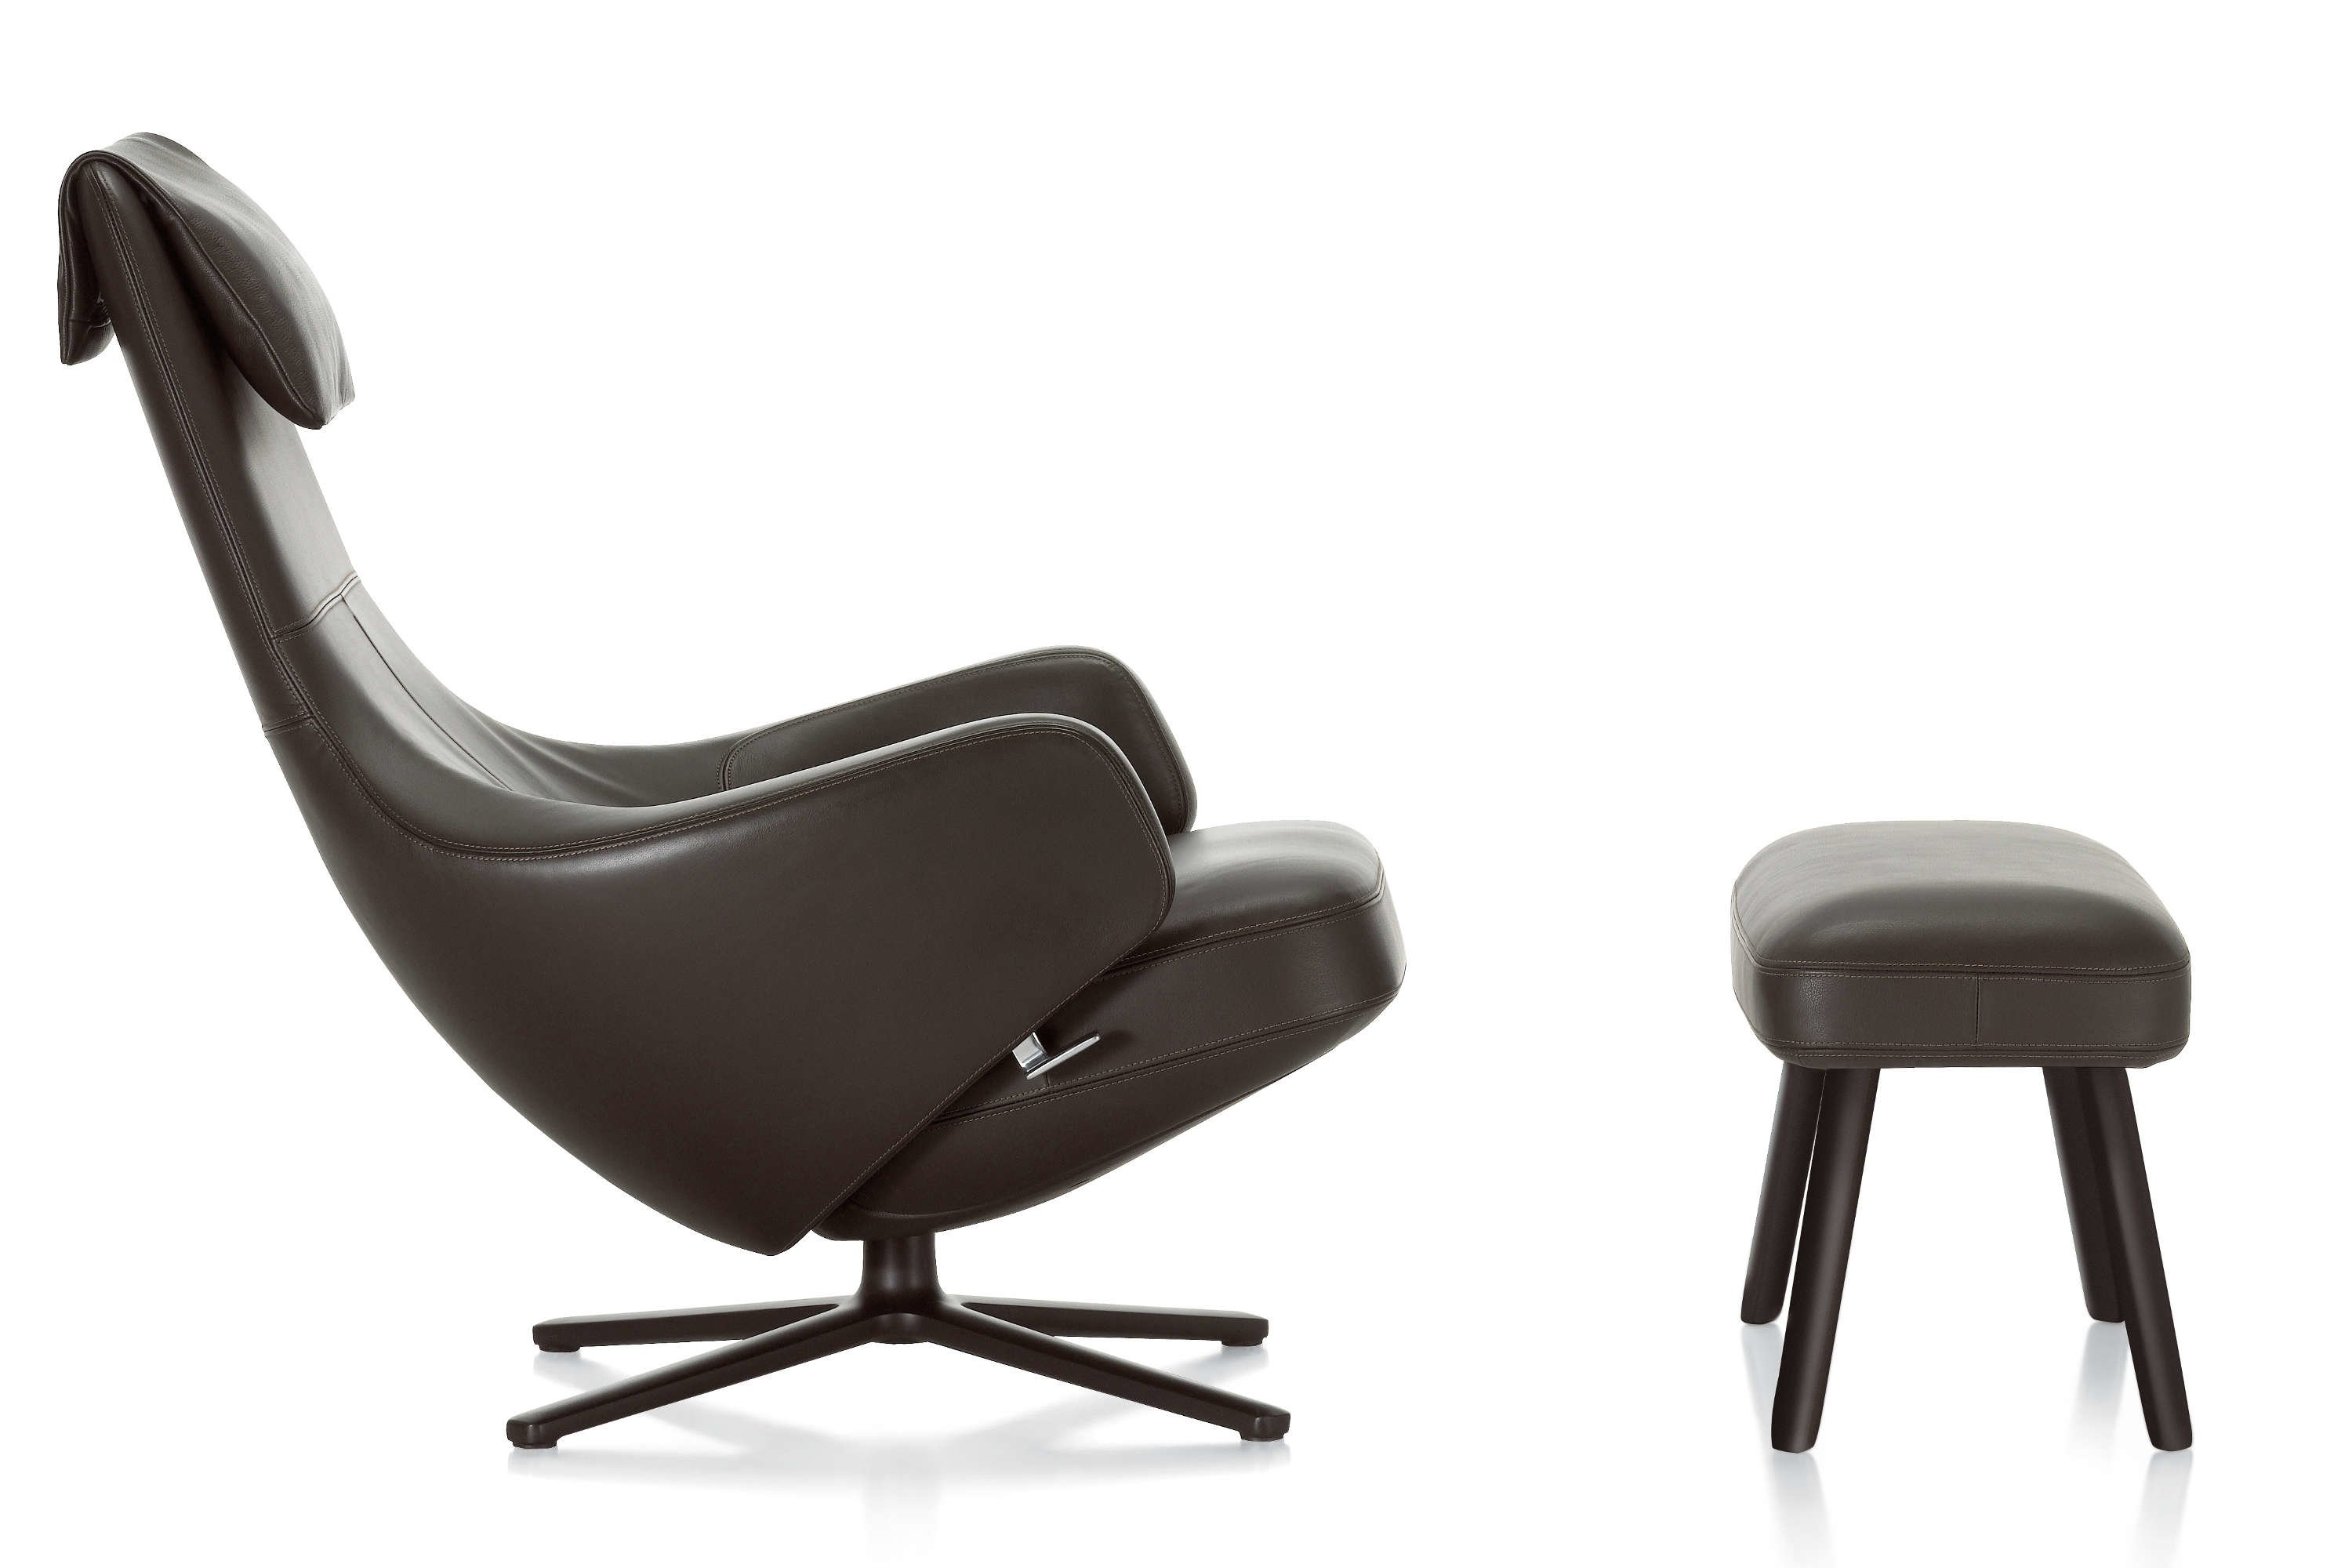 vitra repos fauteuil de projectinrichter. Black Bedroom Furniture Sets. Home Design Ideas